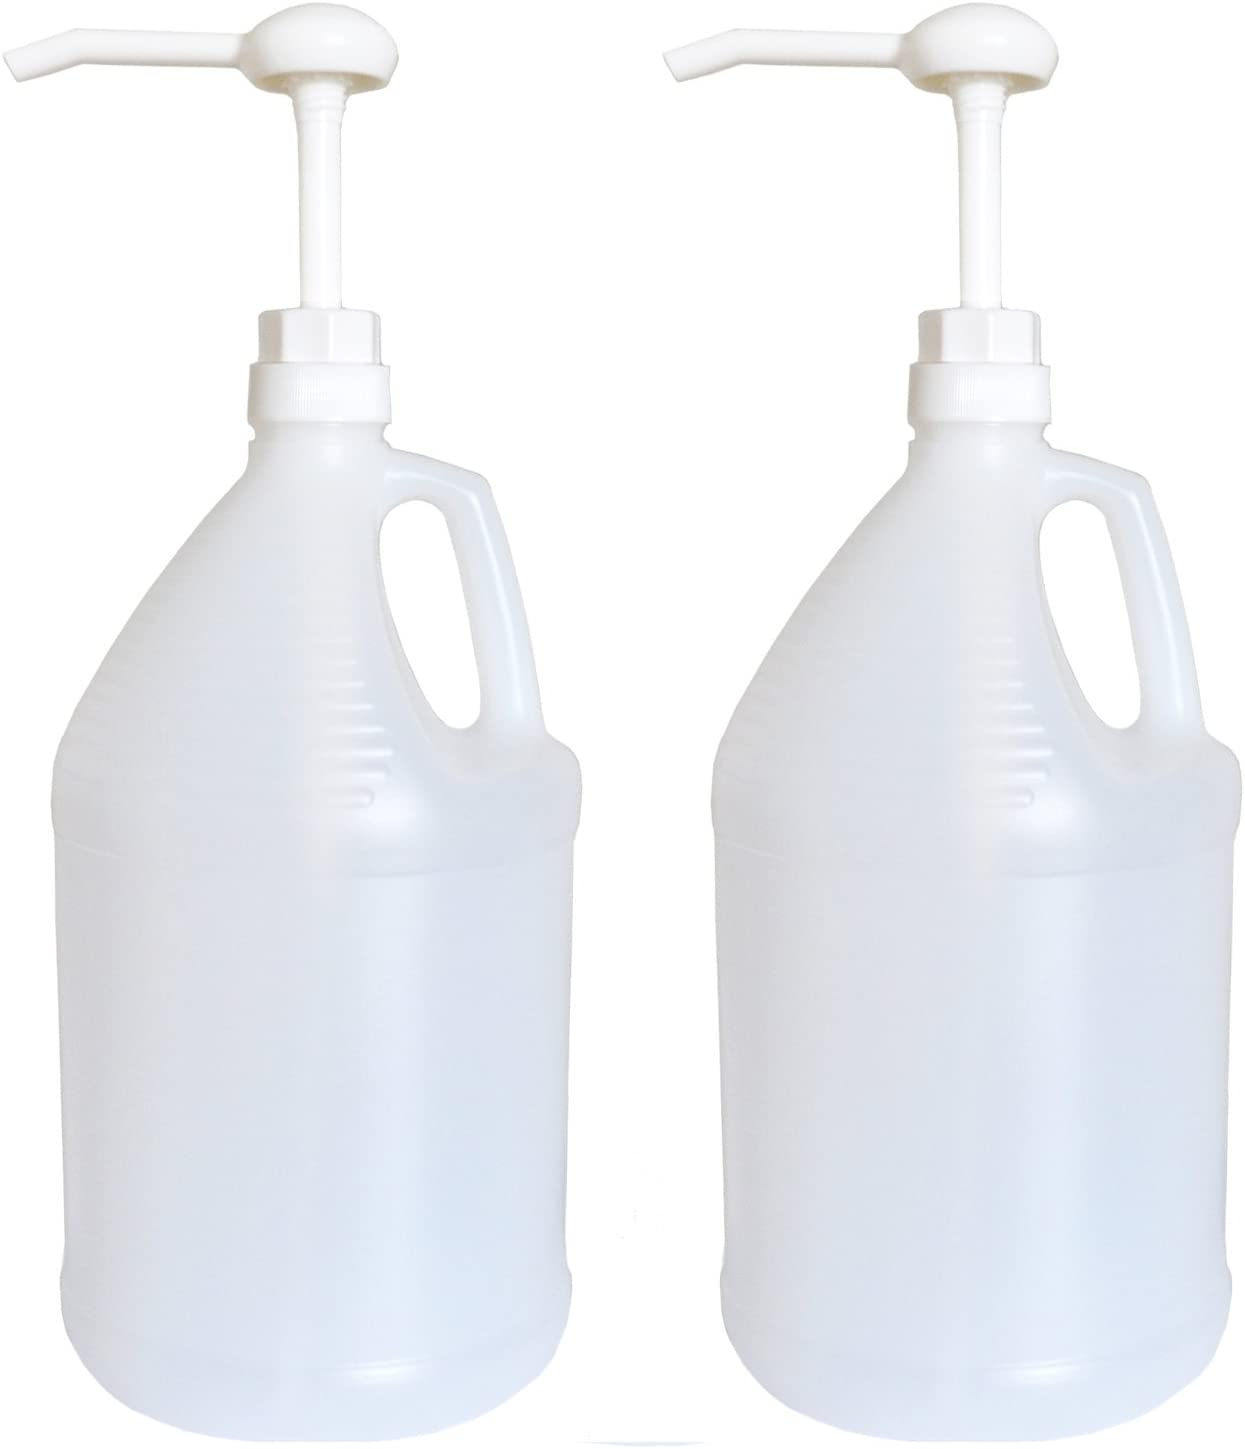 Gallon Jug with Pump, Pack of 2